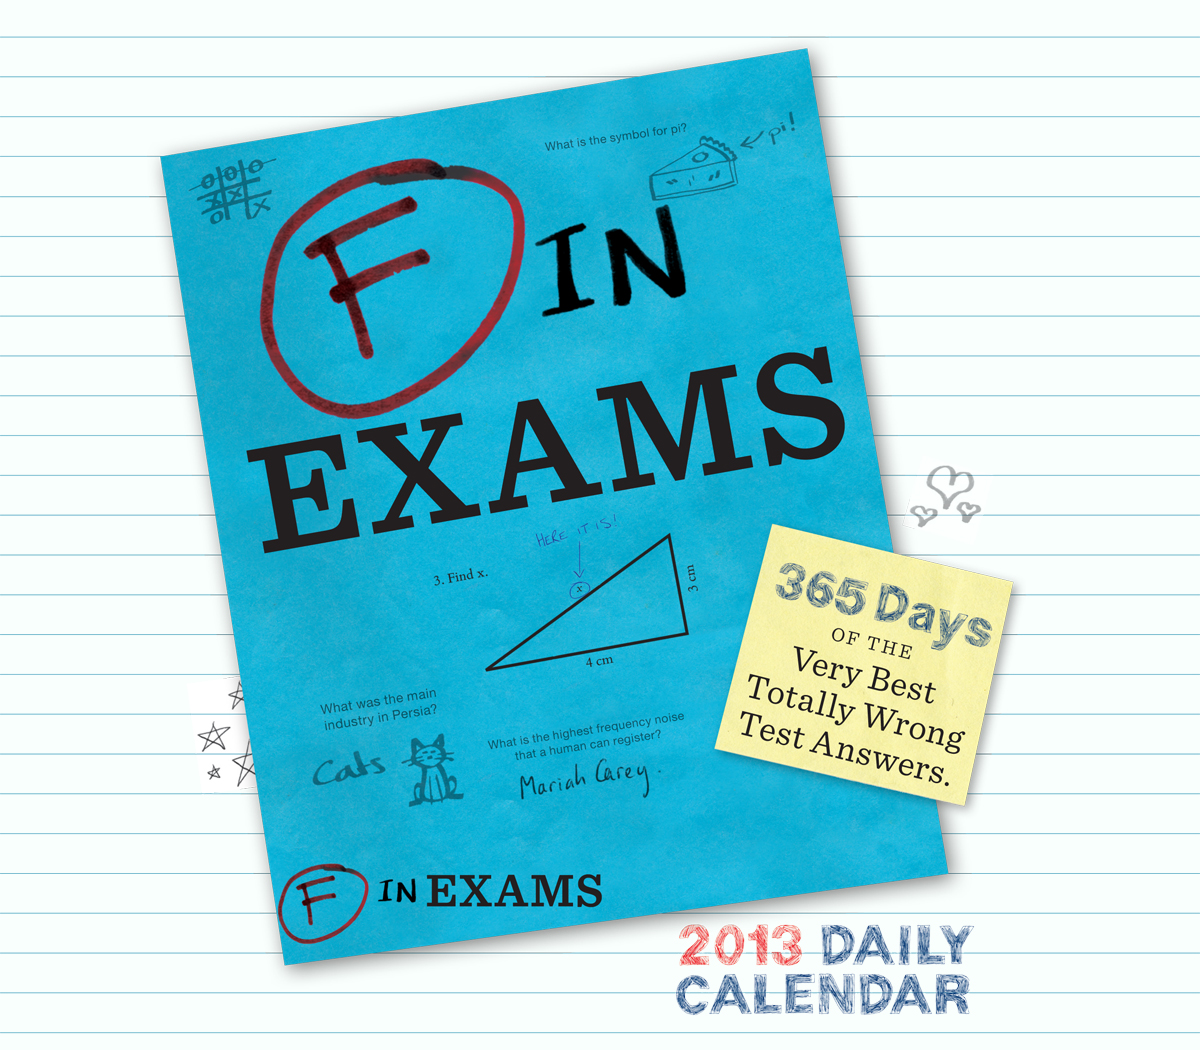 2013 Daily Calendar: F in Exams